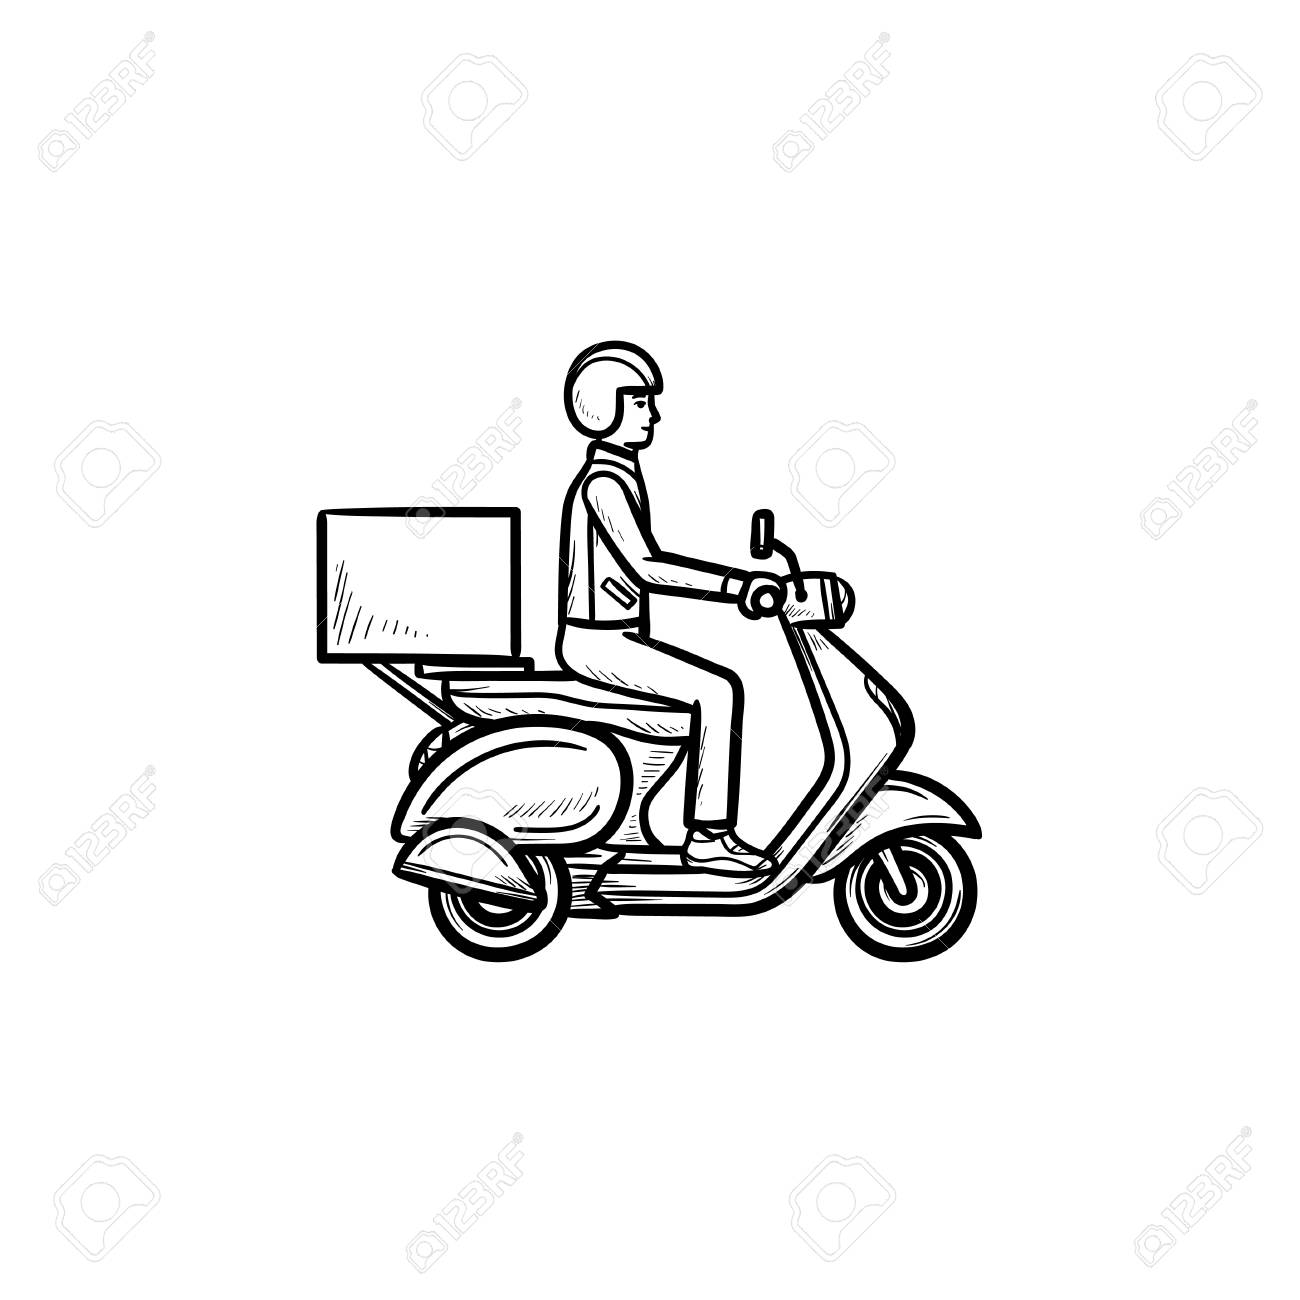 Employee Riding Delivery Bike Hand Drawn Outline Doodle Icon